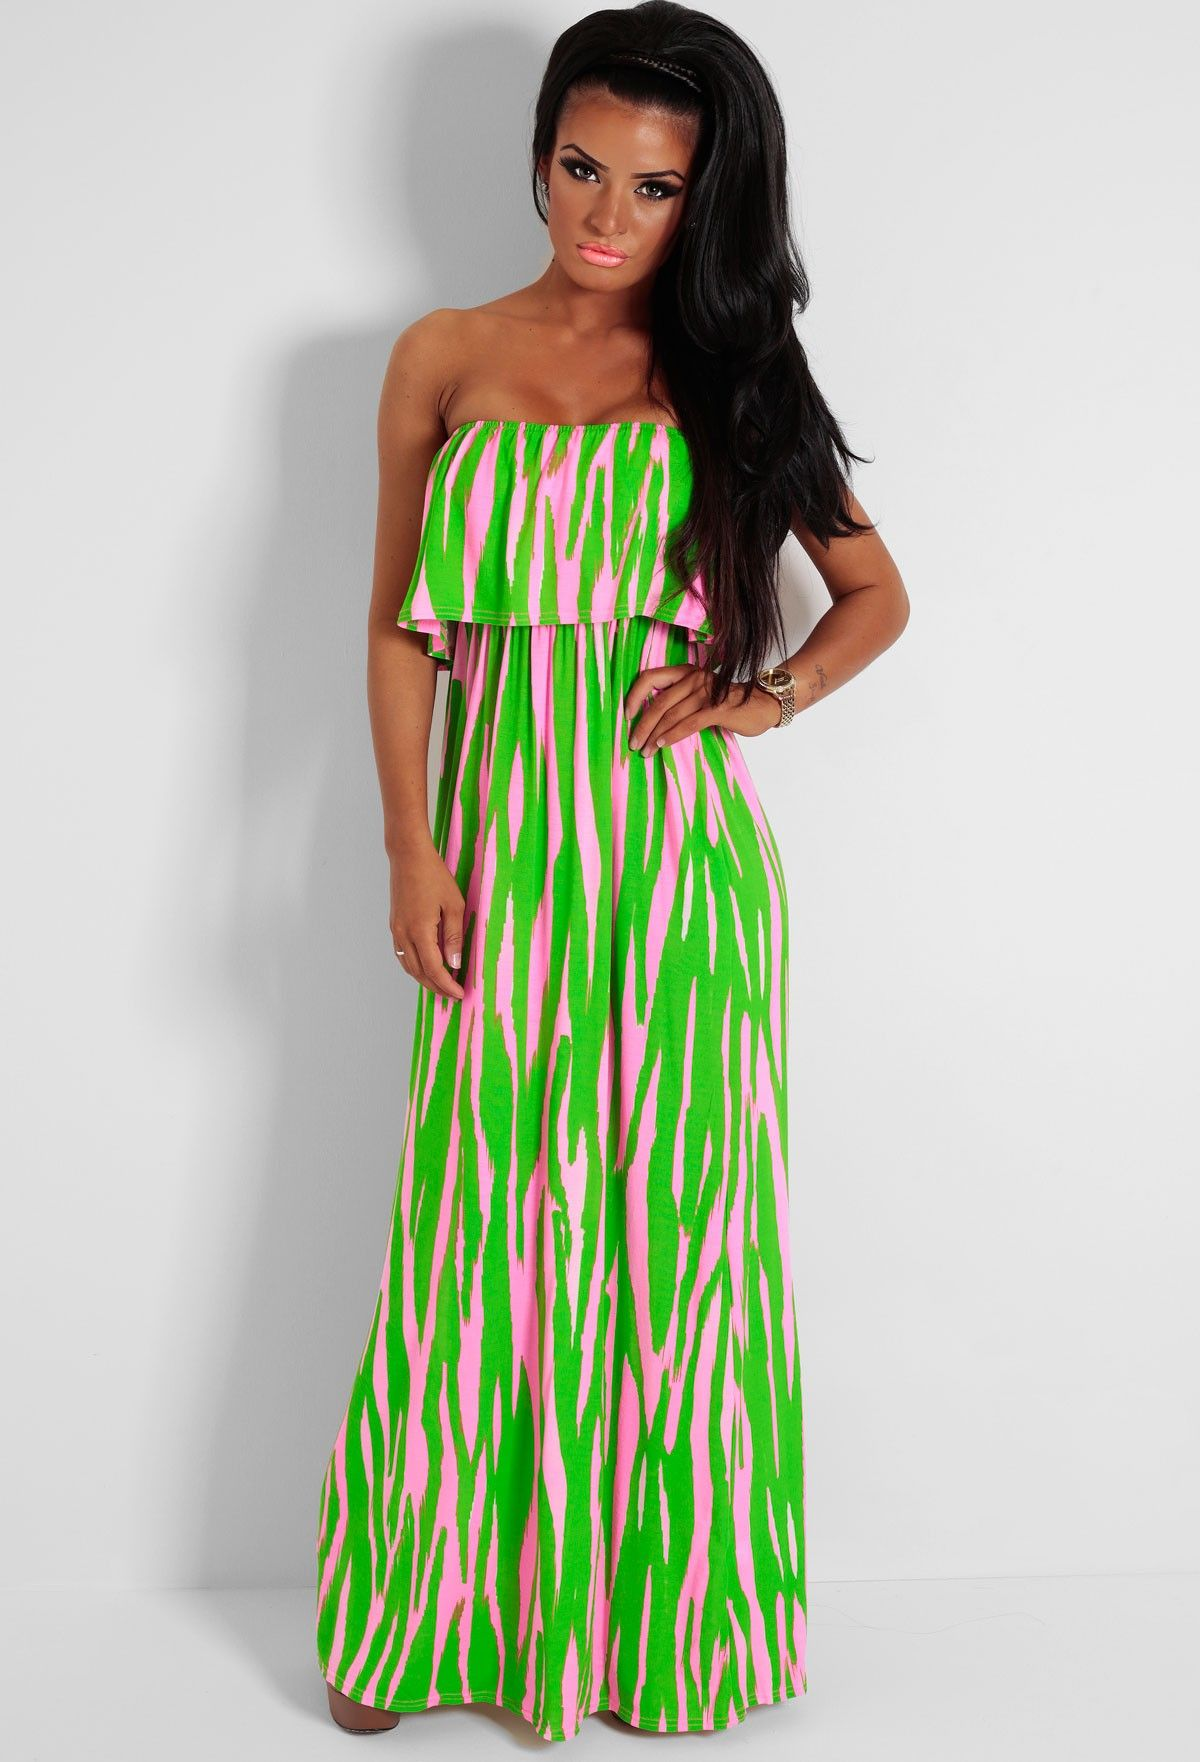 595939e049a1 Fizzy Green and Pink Strapless Overlay Maxi Dress